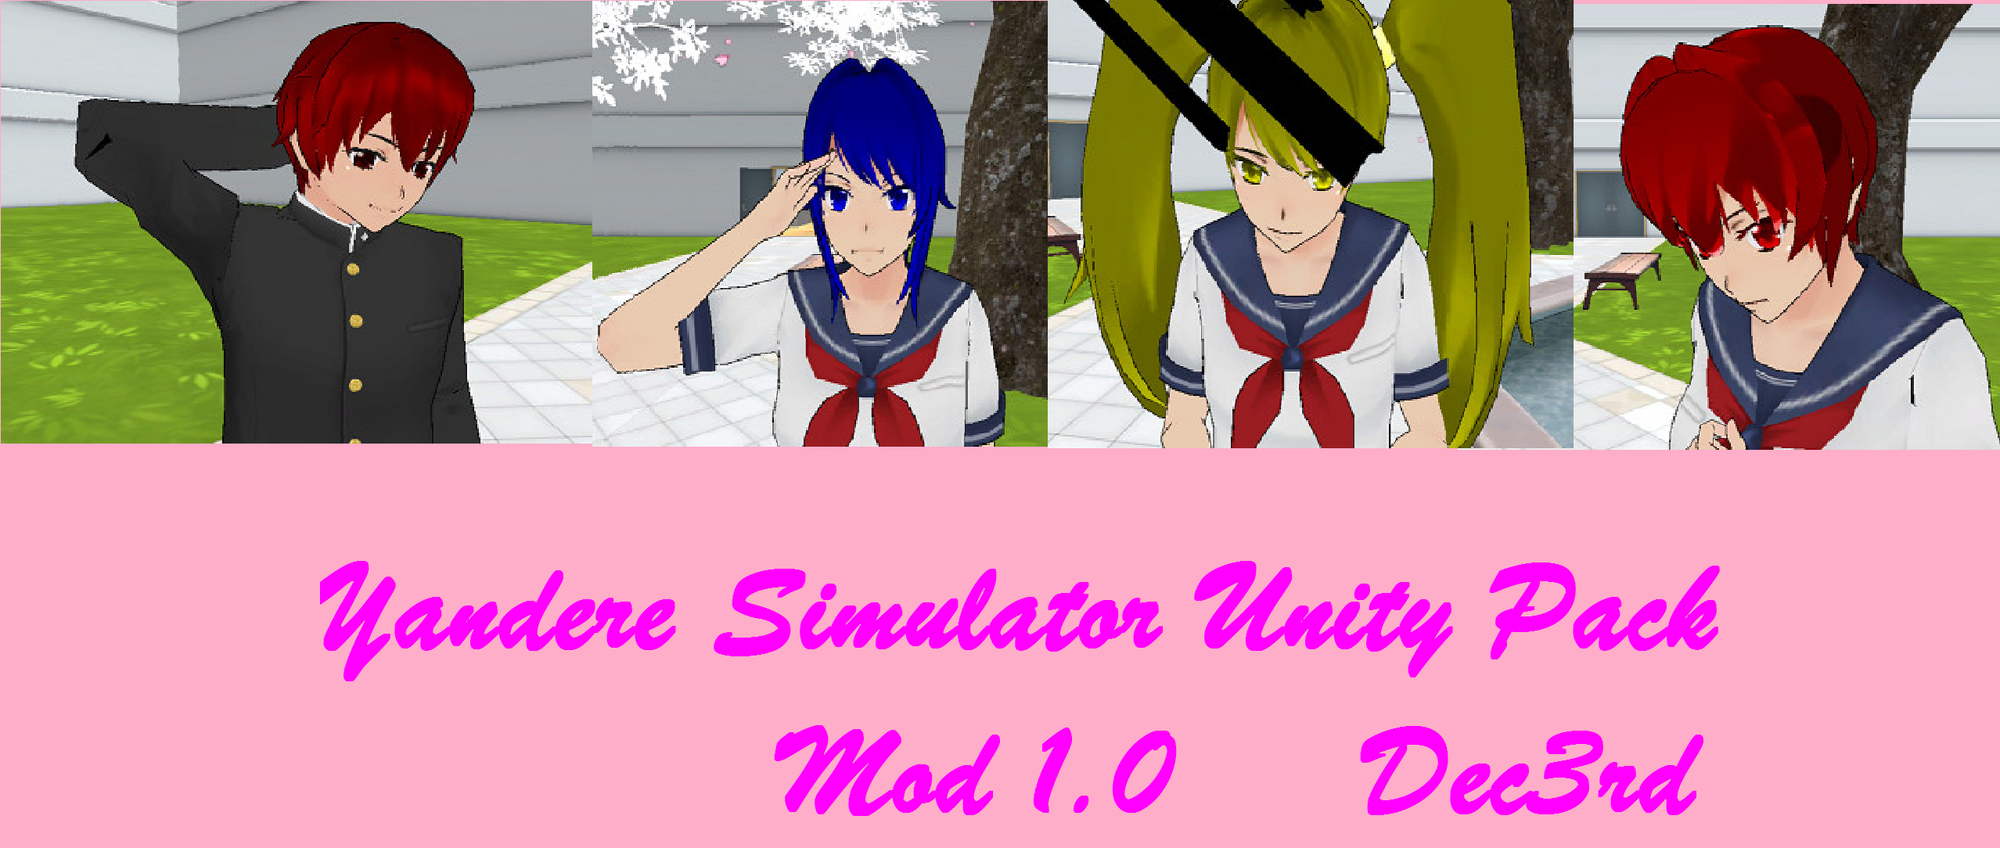 User blog:MadPie/Unity Character Pack Mod 1 0 | Yandere